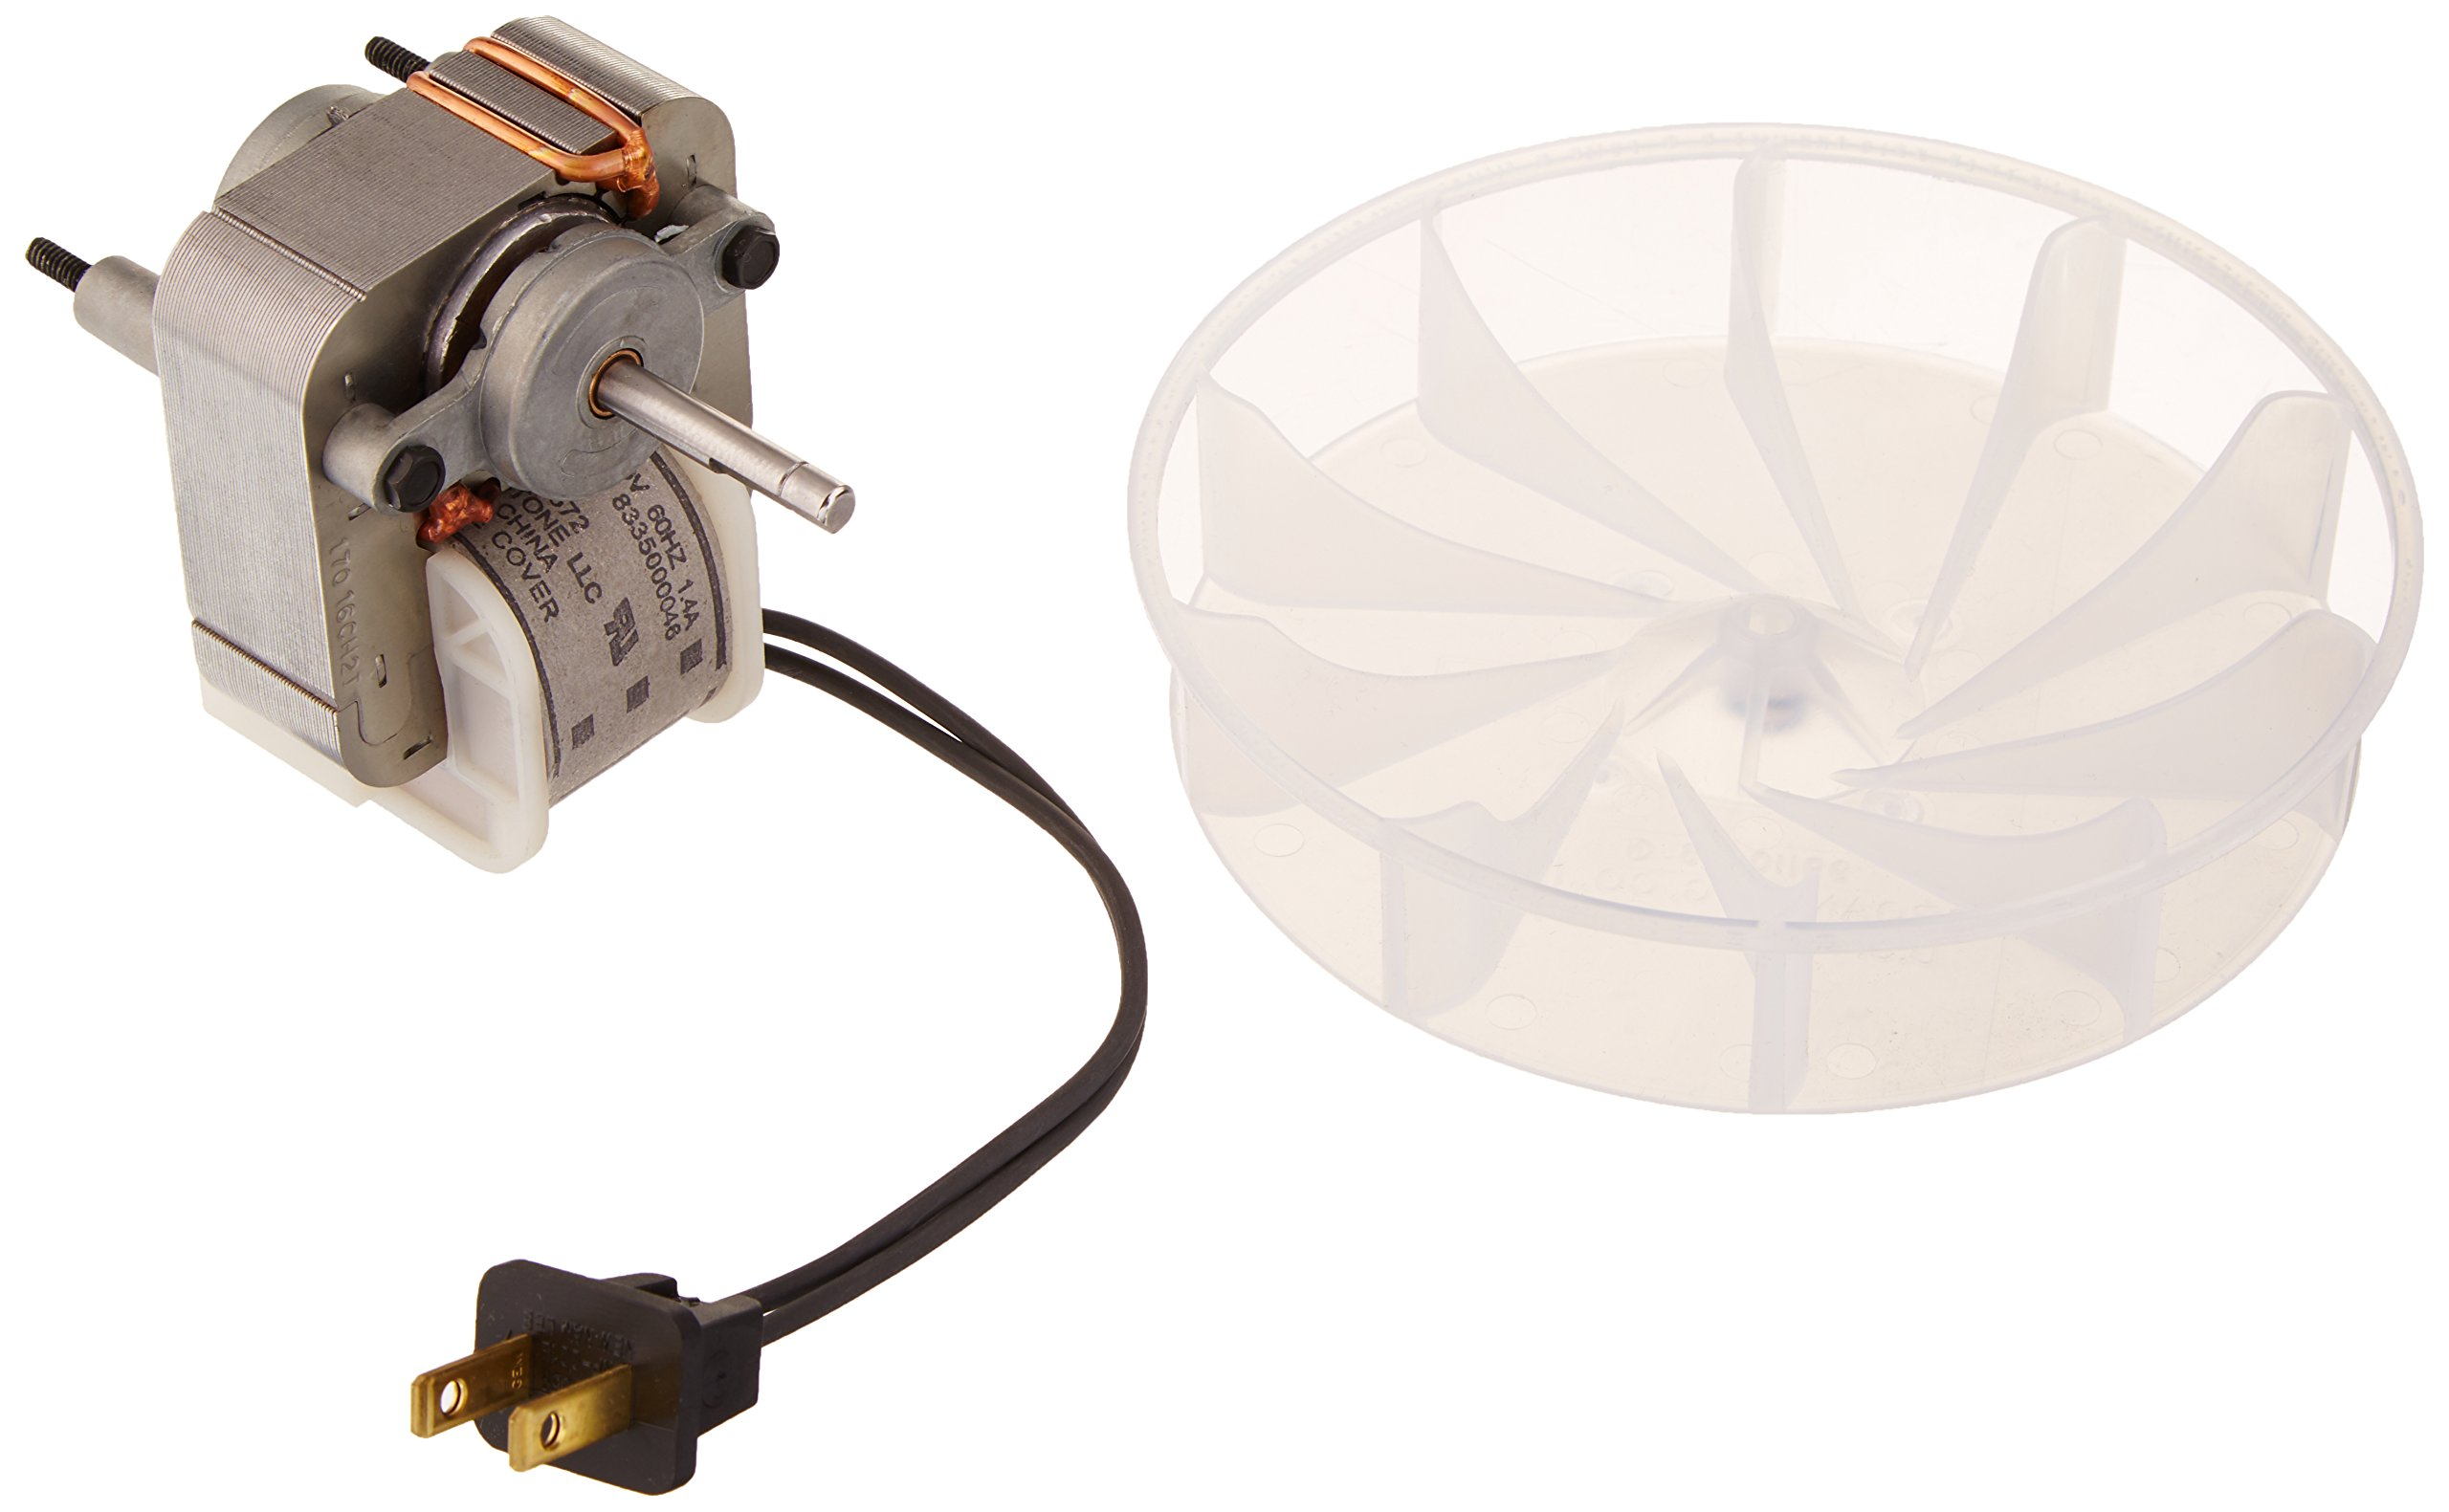 Nutone Bathroom Fan Replacement Parts